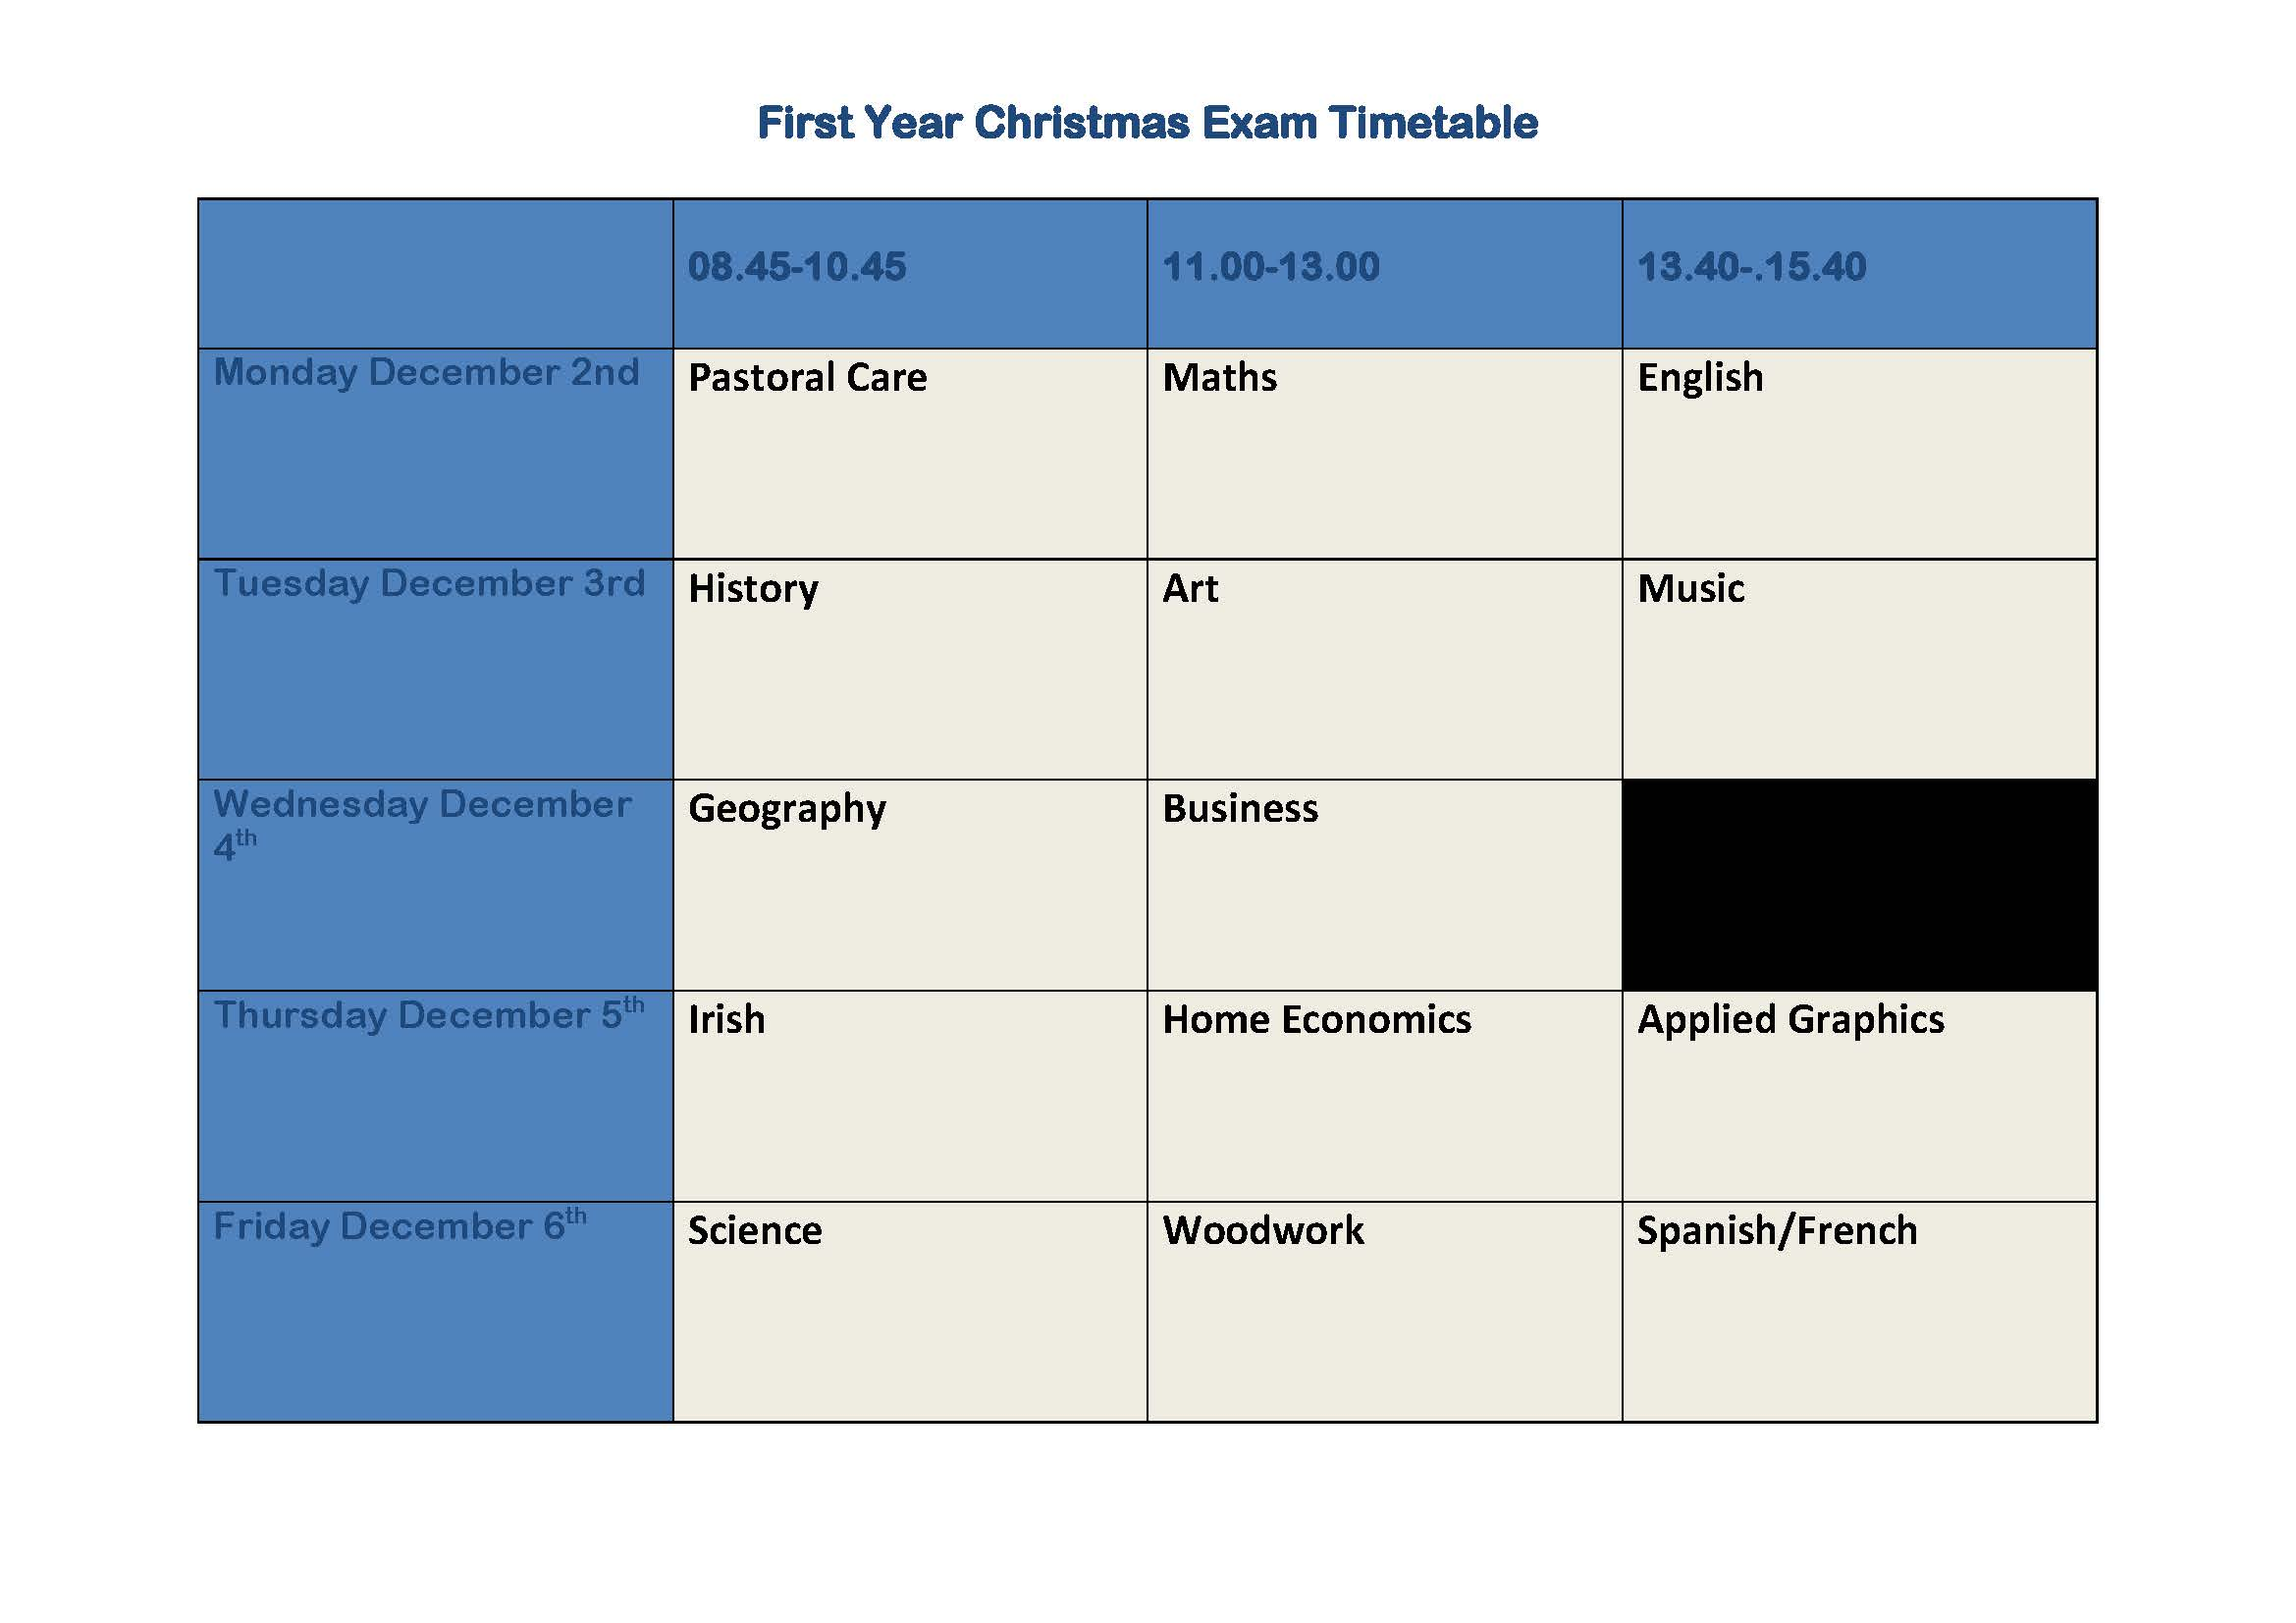 First Year Christmas Exam Timetable